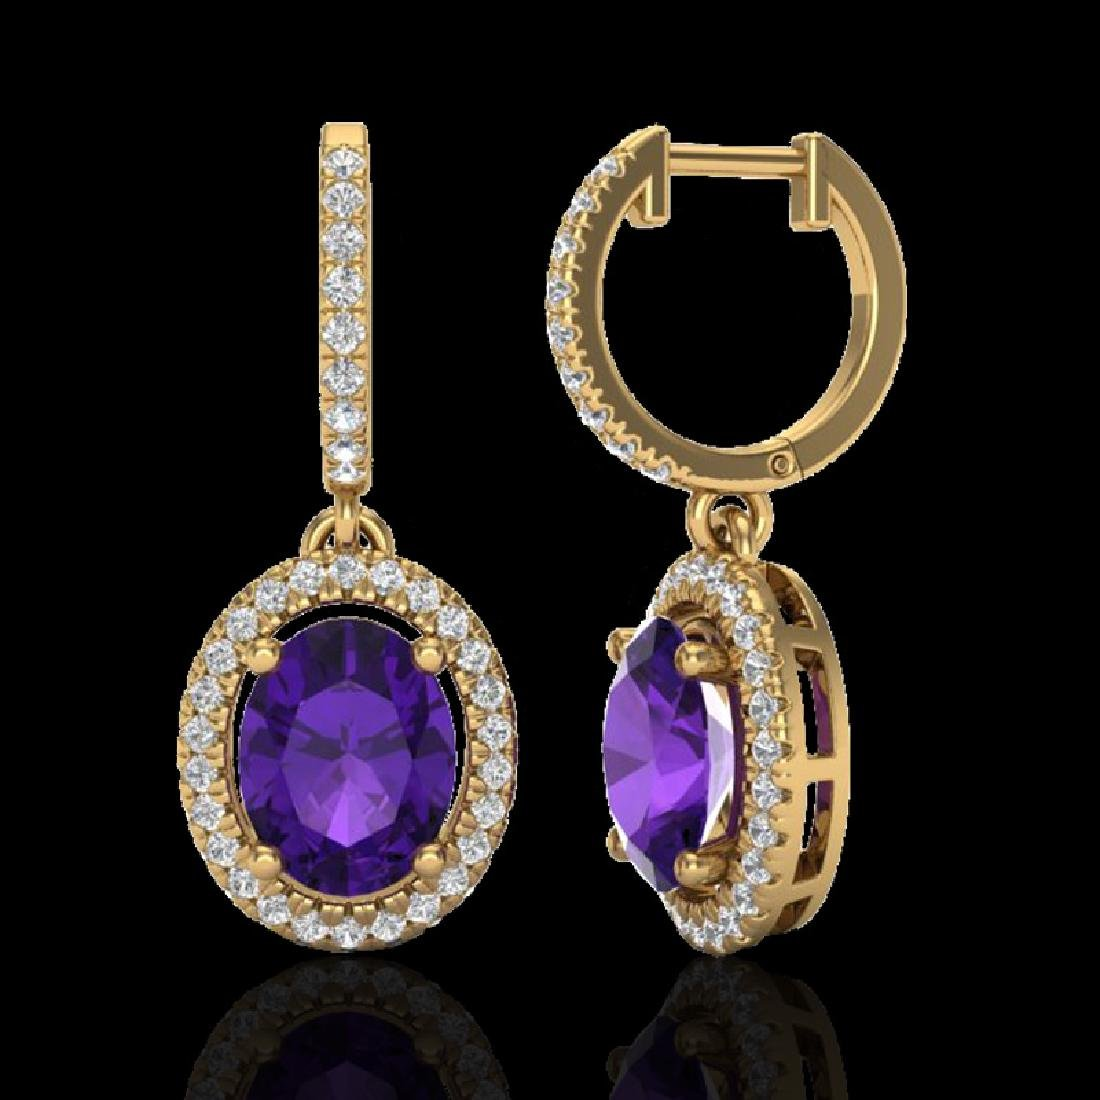 3.50 CTW Amethyst & Micro Pave VS/SI Diamond Earrings - 2